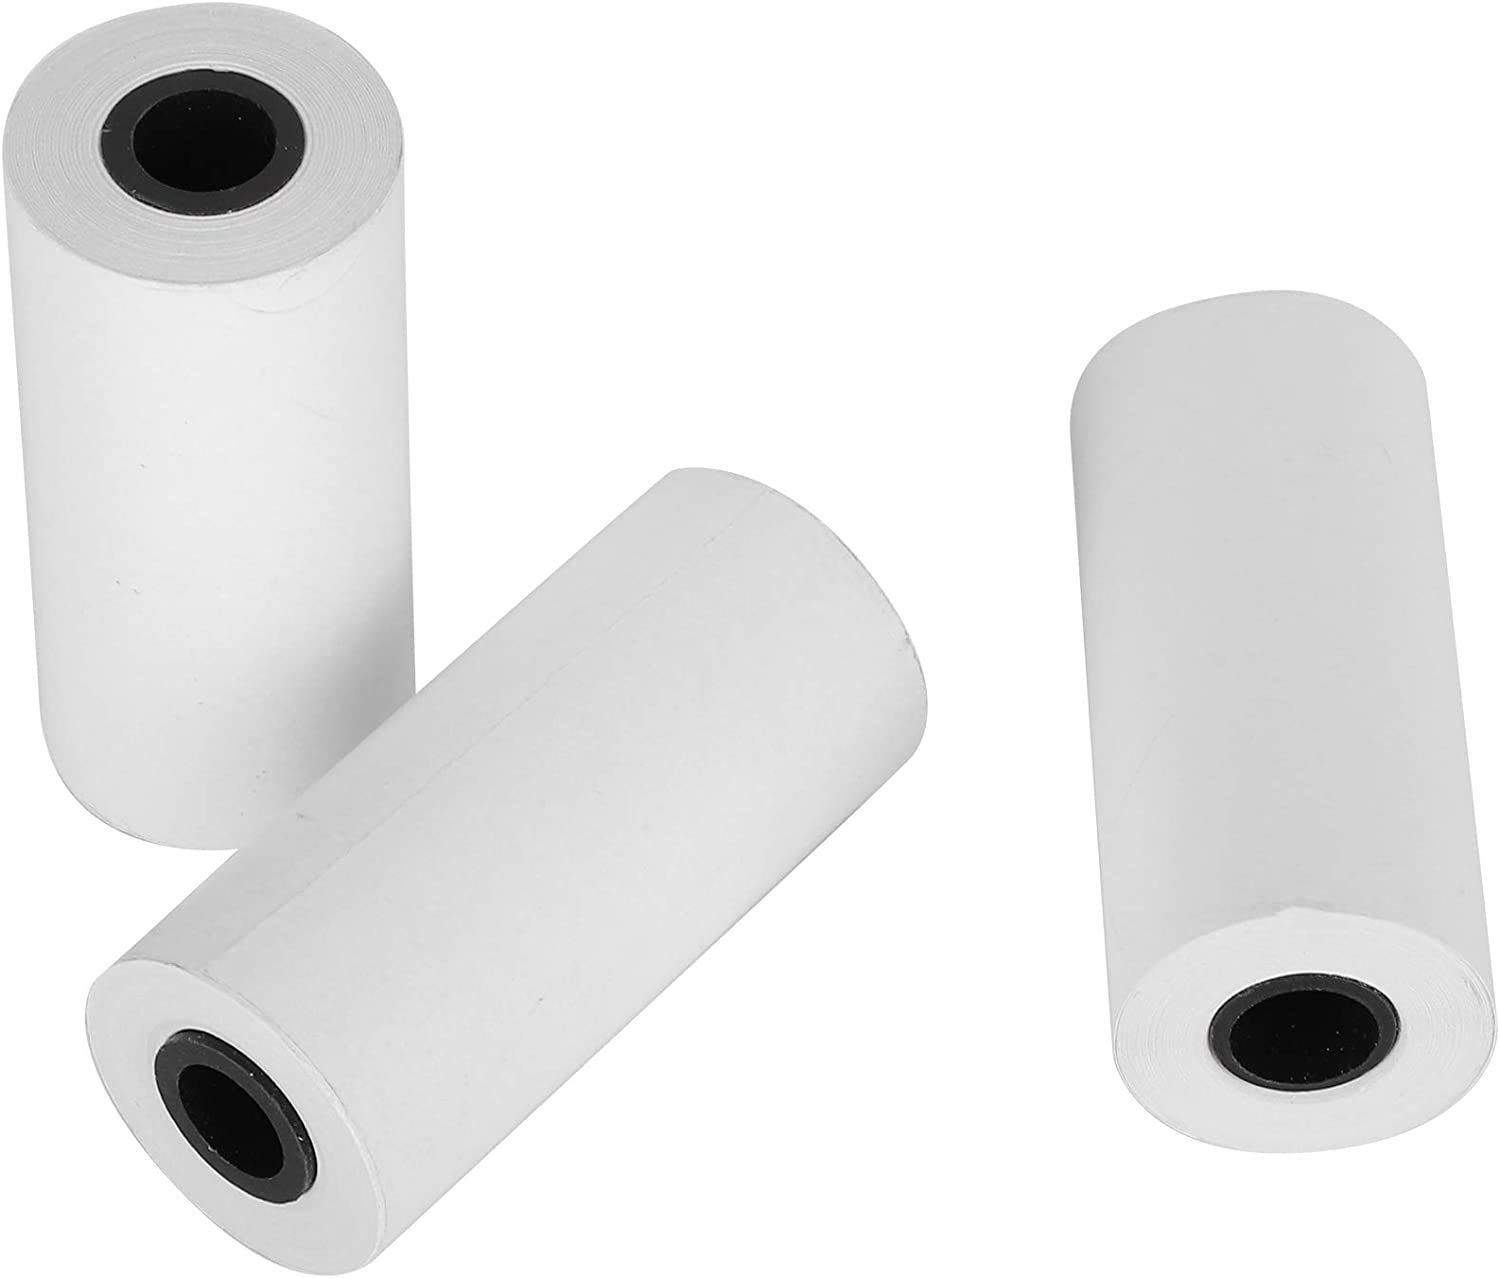 Thermal Photo Paper 3 Mini Printer Roll Min New Shipping Free In a popularity